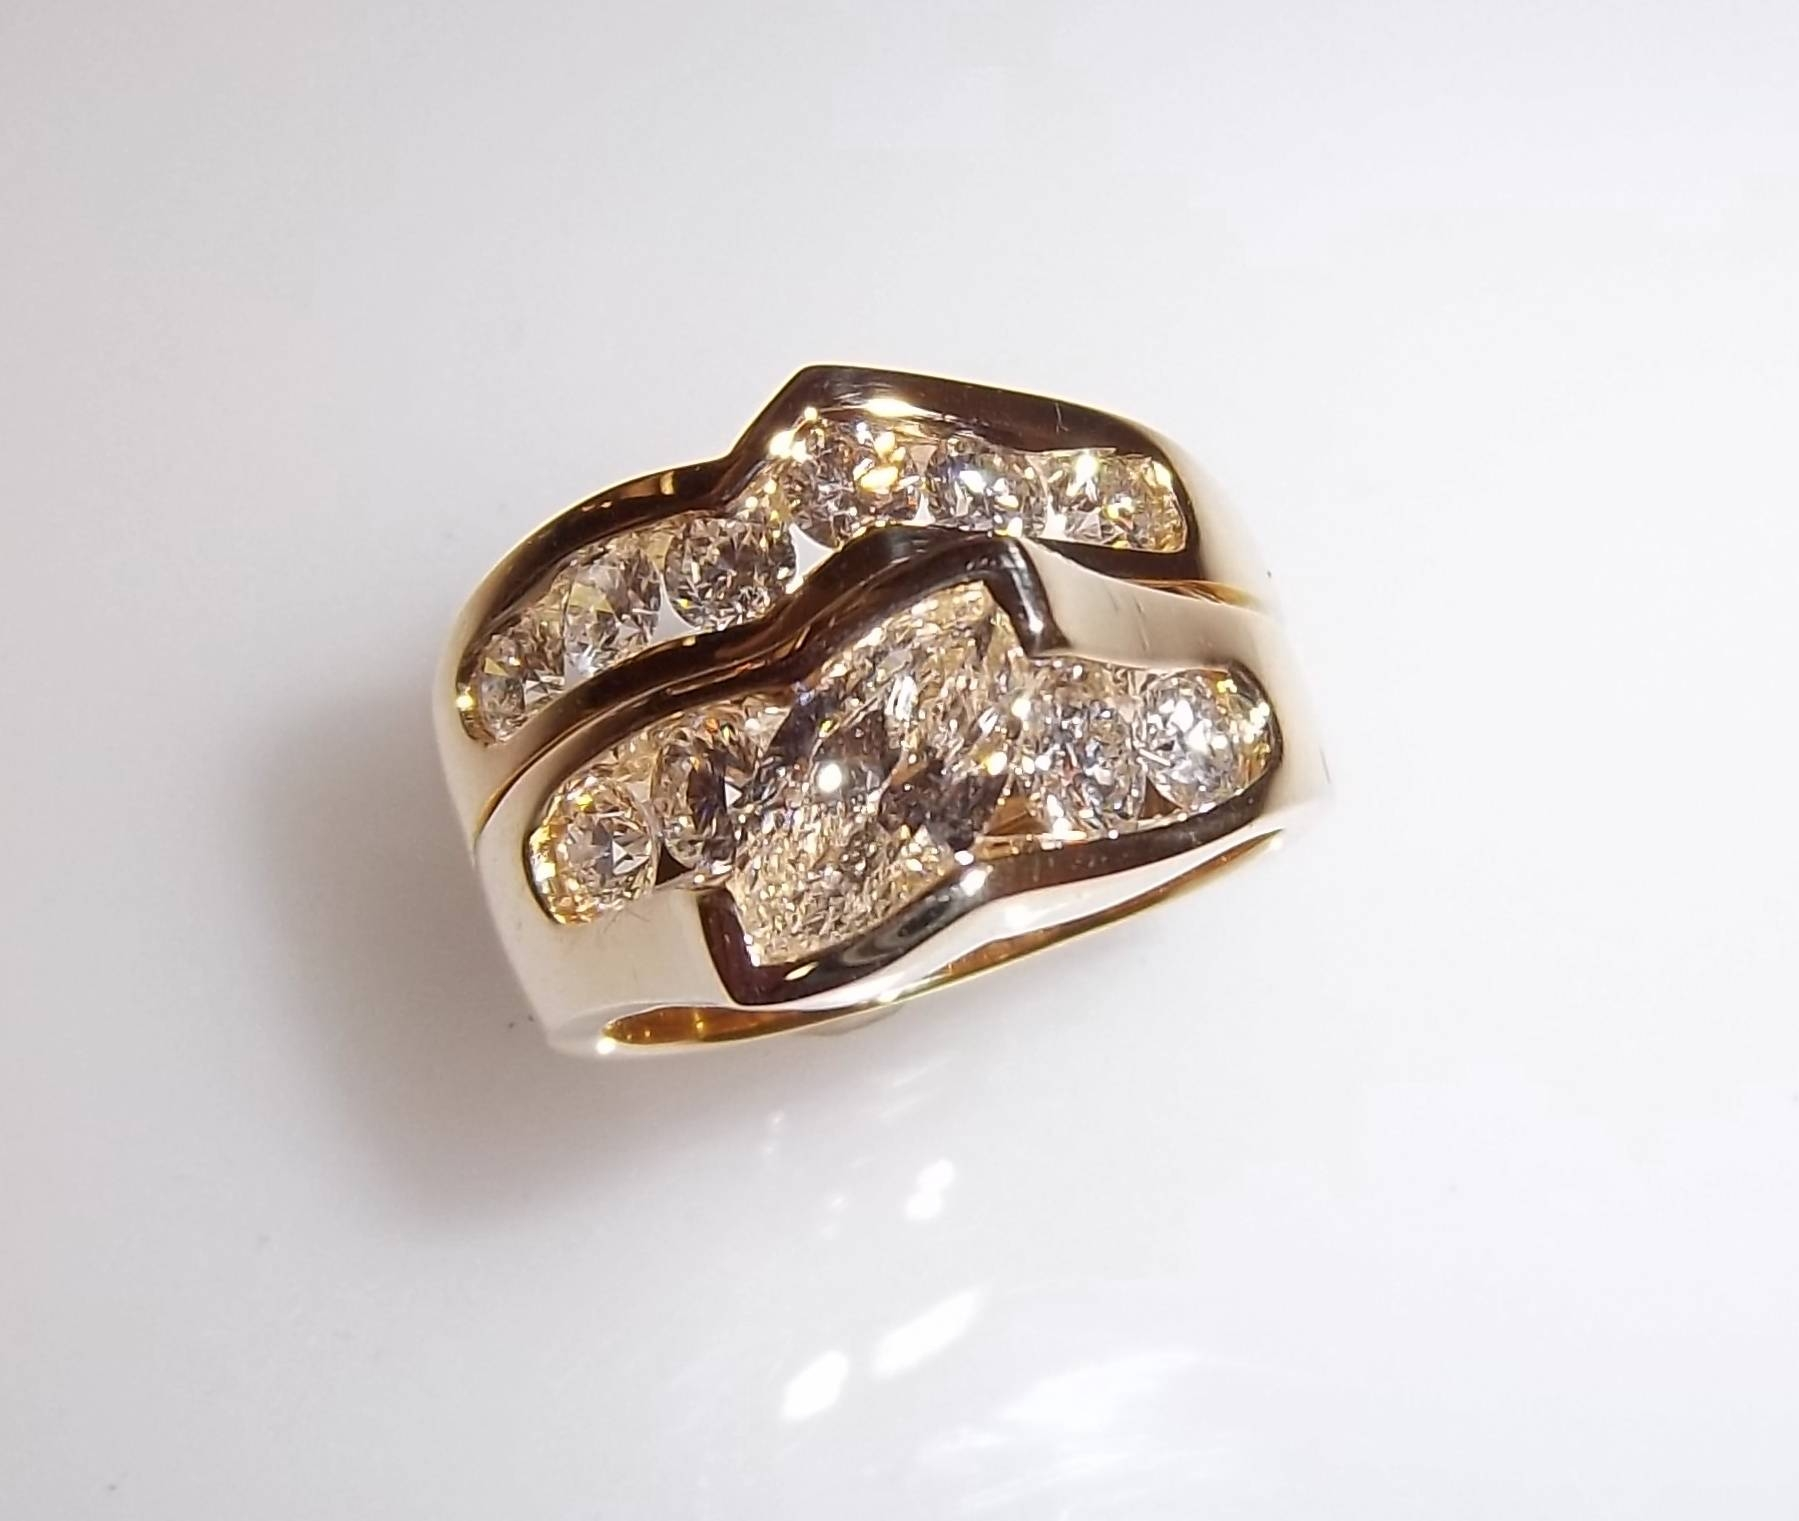 Wedding Anniversary Rings For Her | Wedding Ideas For Most Recently Released Mens Anniversary Rings (View 8 of 25)